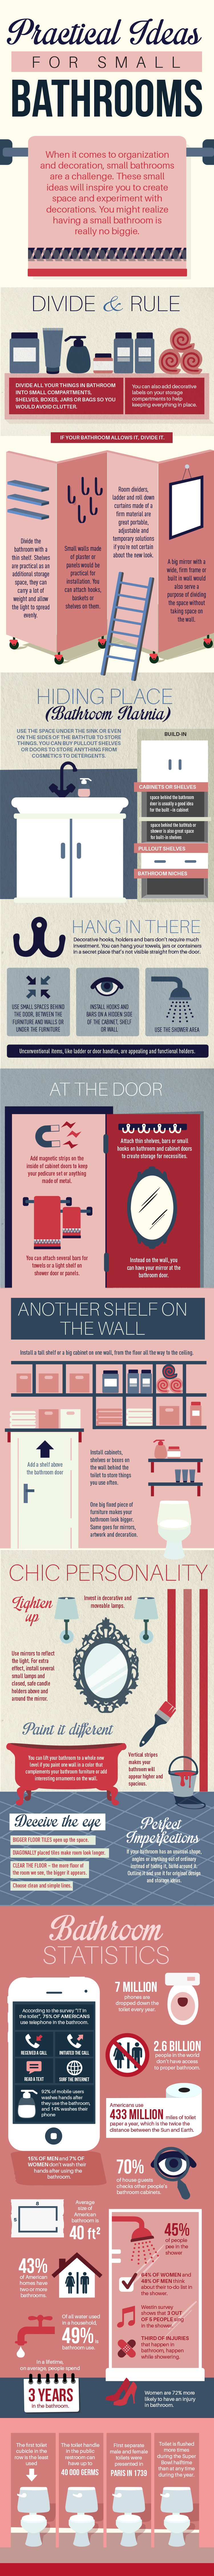 Practical Ideas for Small Bathrooms Infographic